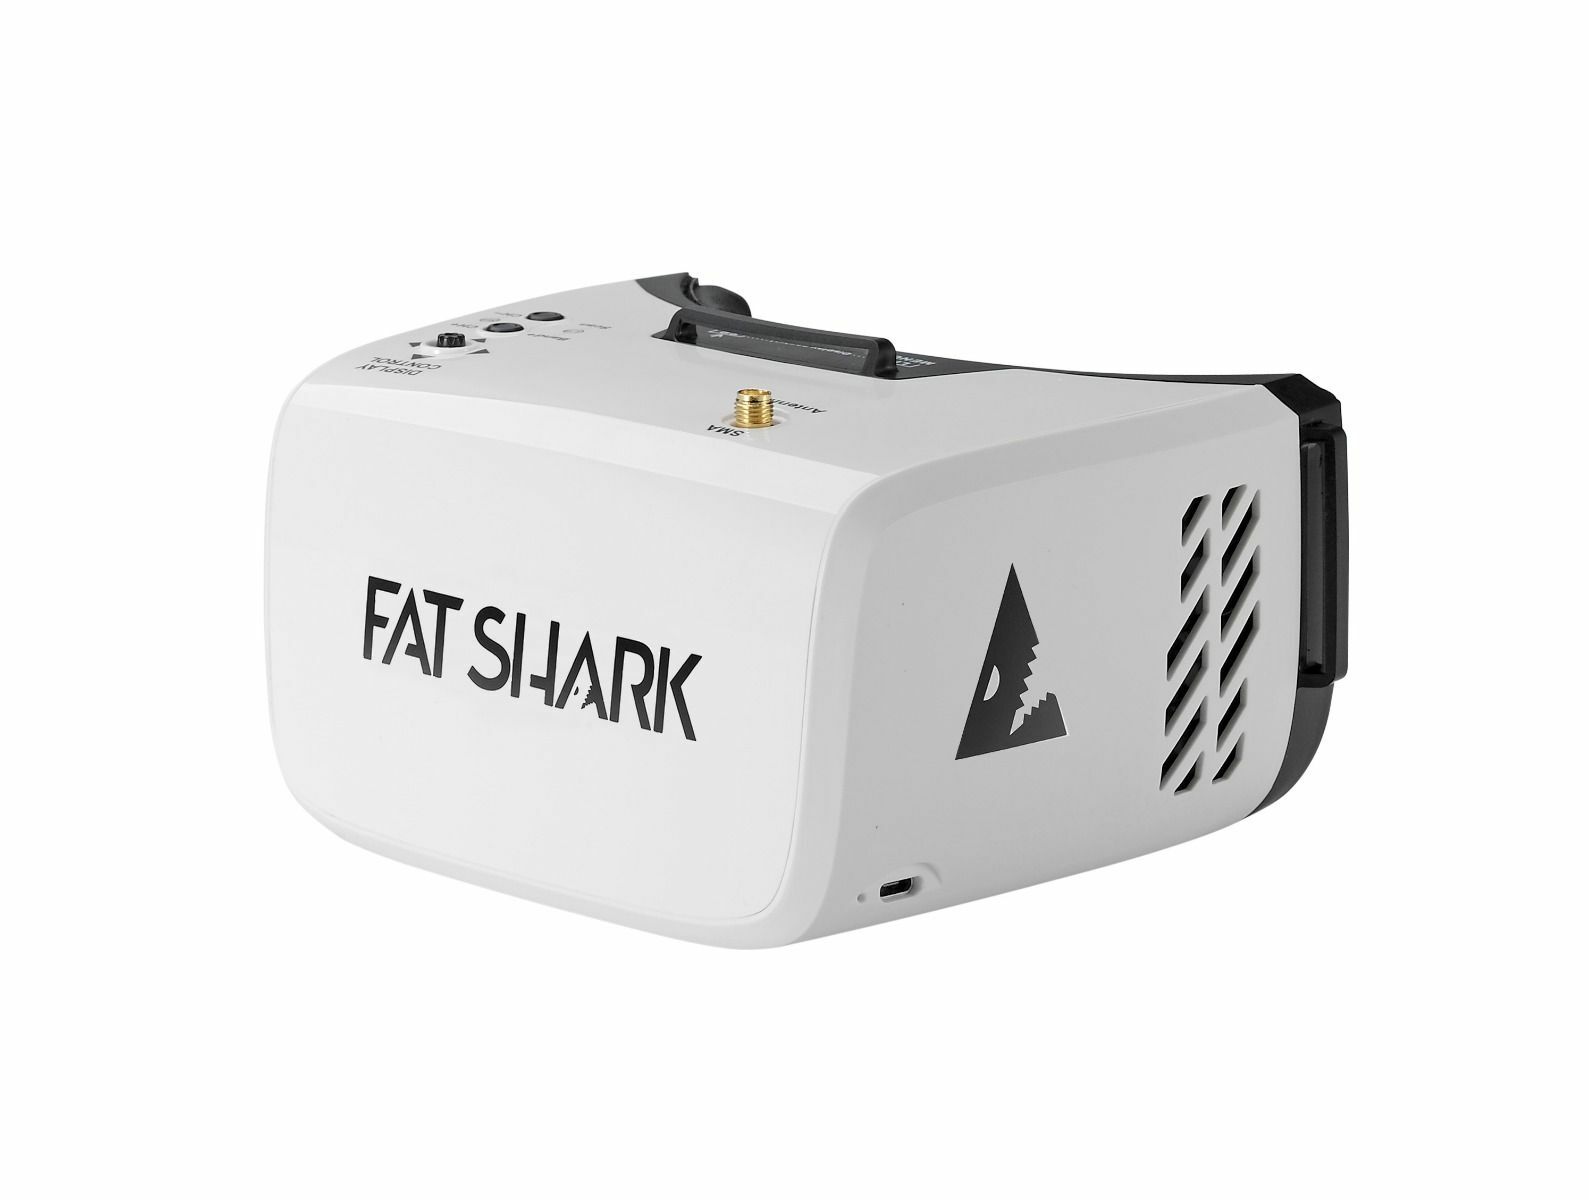 Fat Shark RECON V3 FPV Goggles